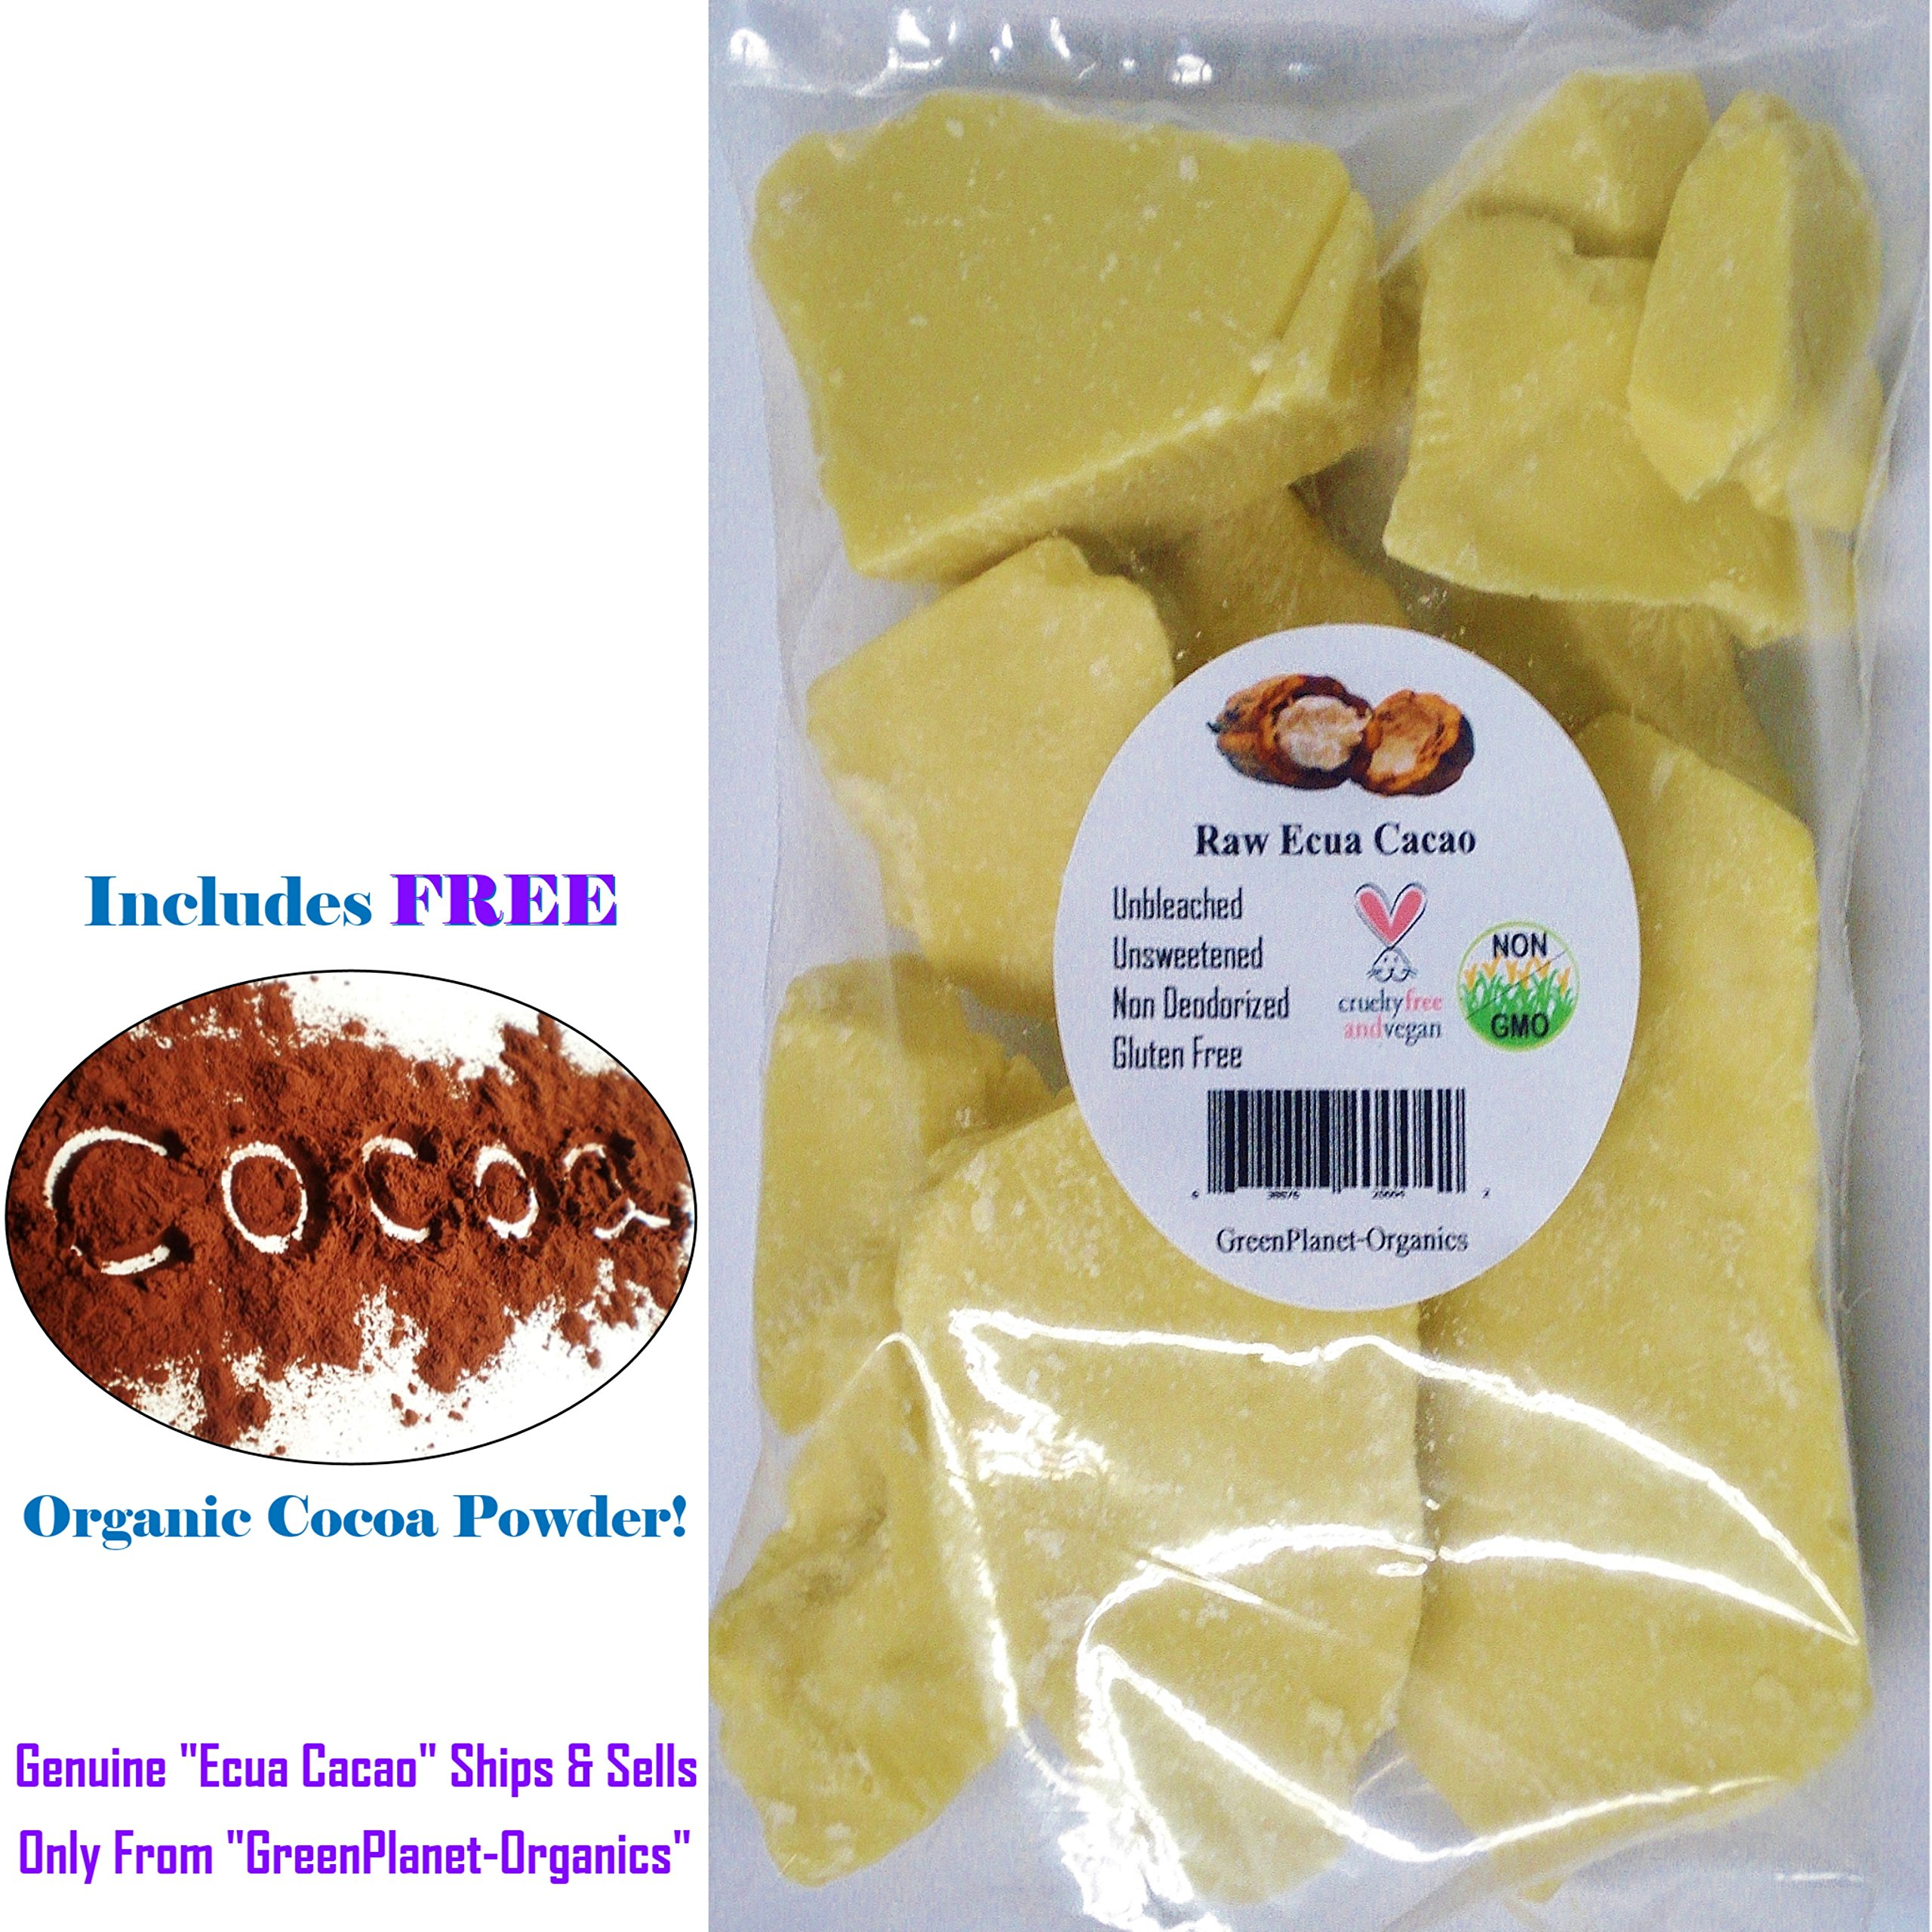 Truly Raw Ecua-Cacao Butter For Baking (Unrefined, Unbleached, Non-Deodorized) Grade-A (1 lb)